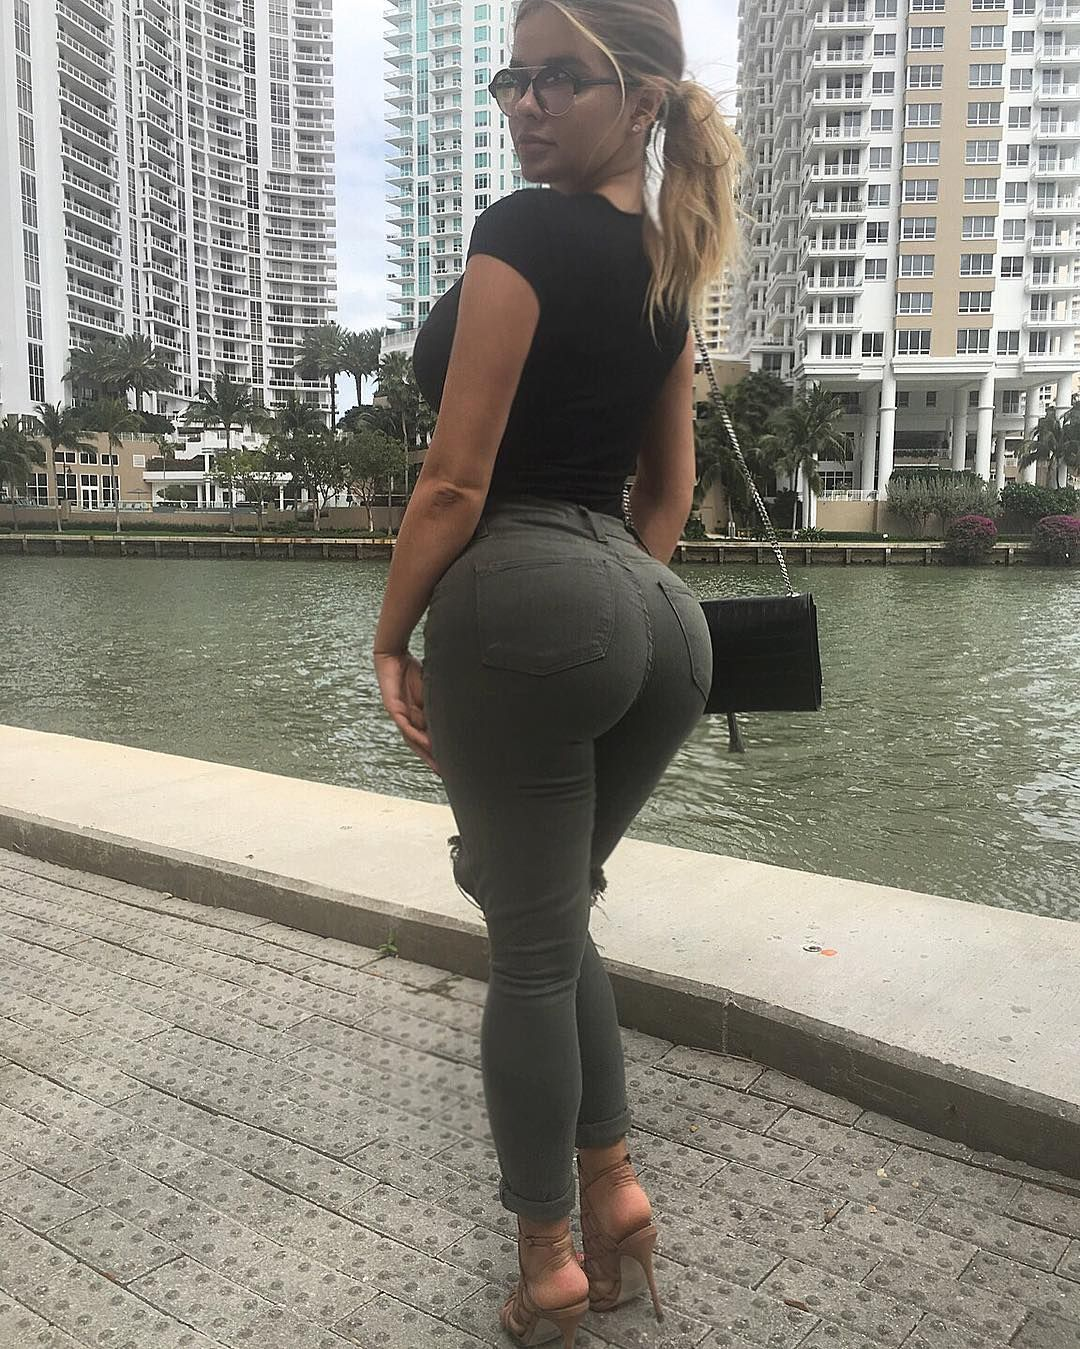 Russian girl dating in los angeles